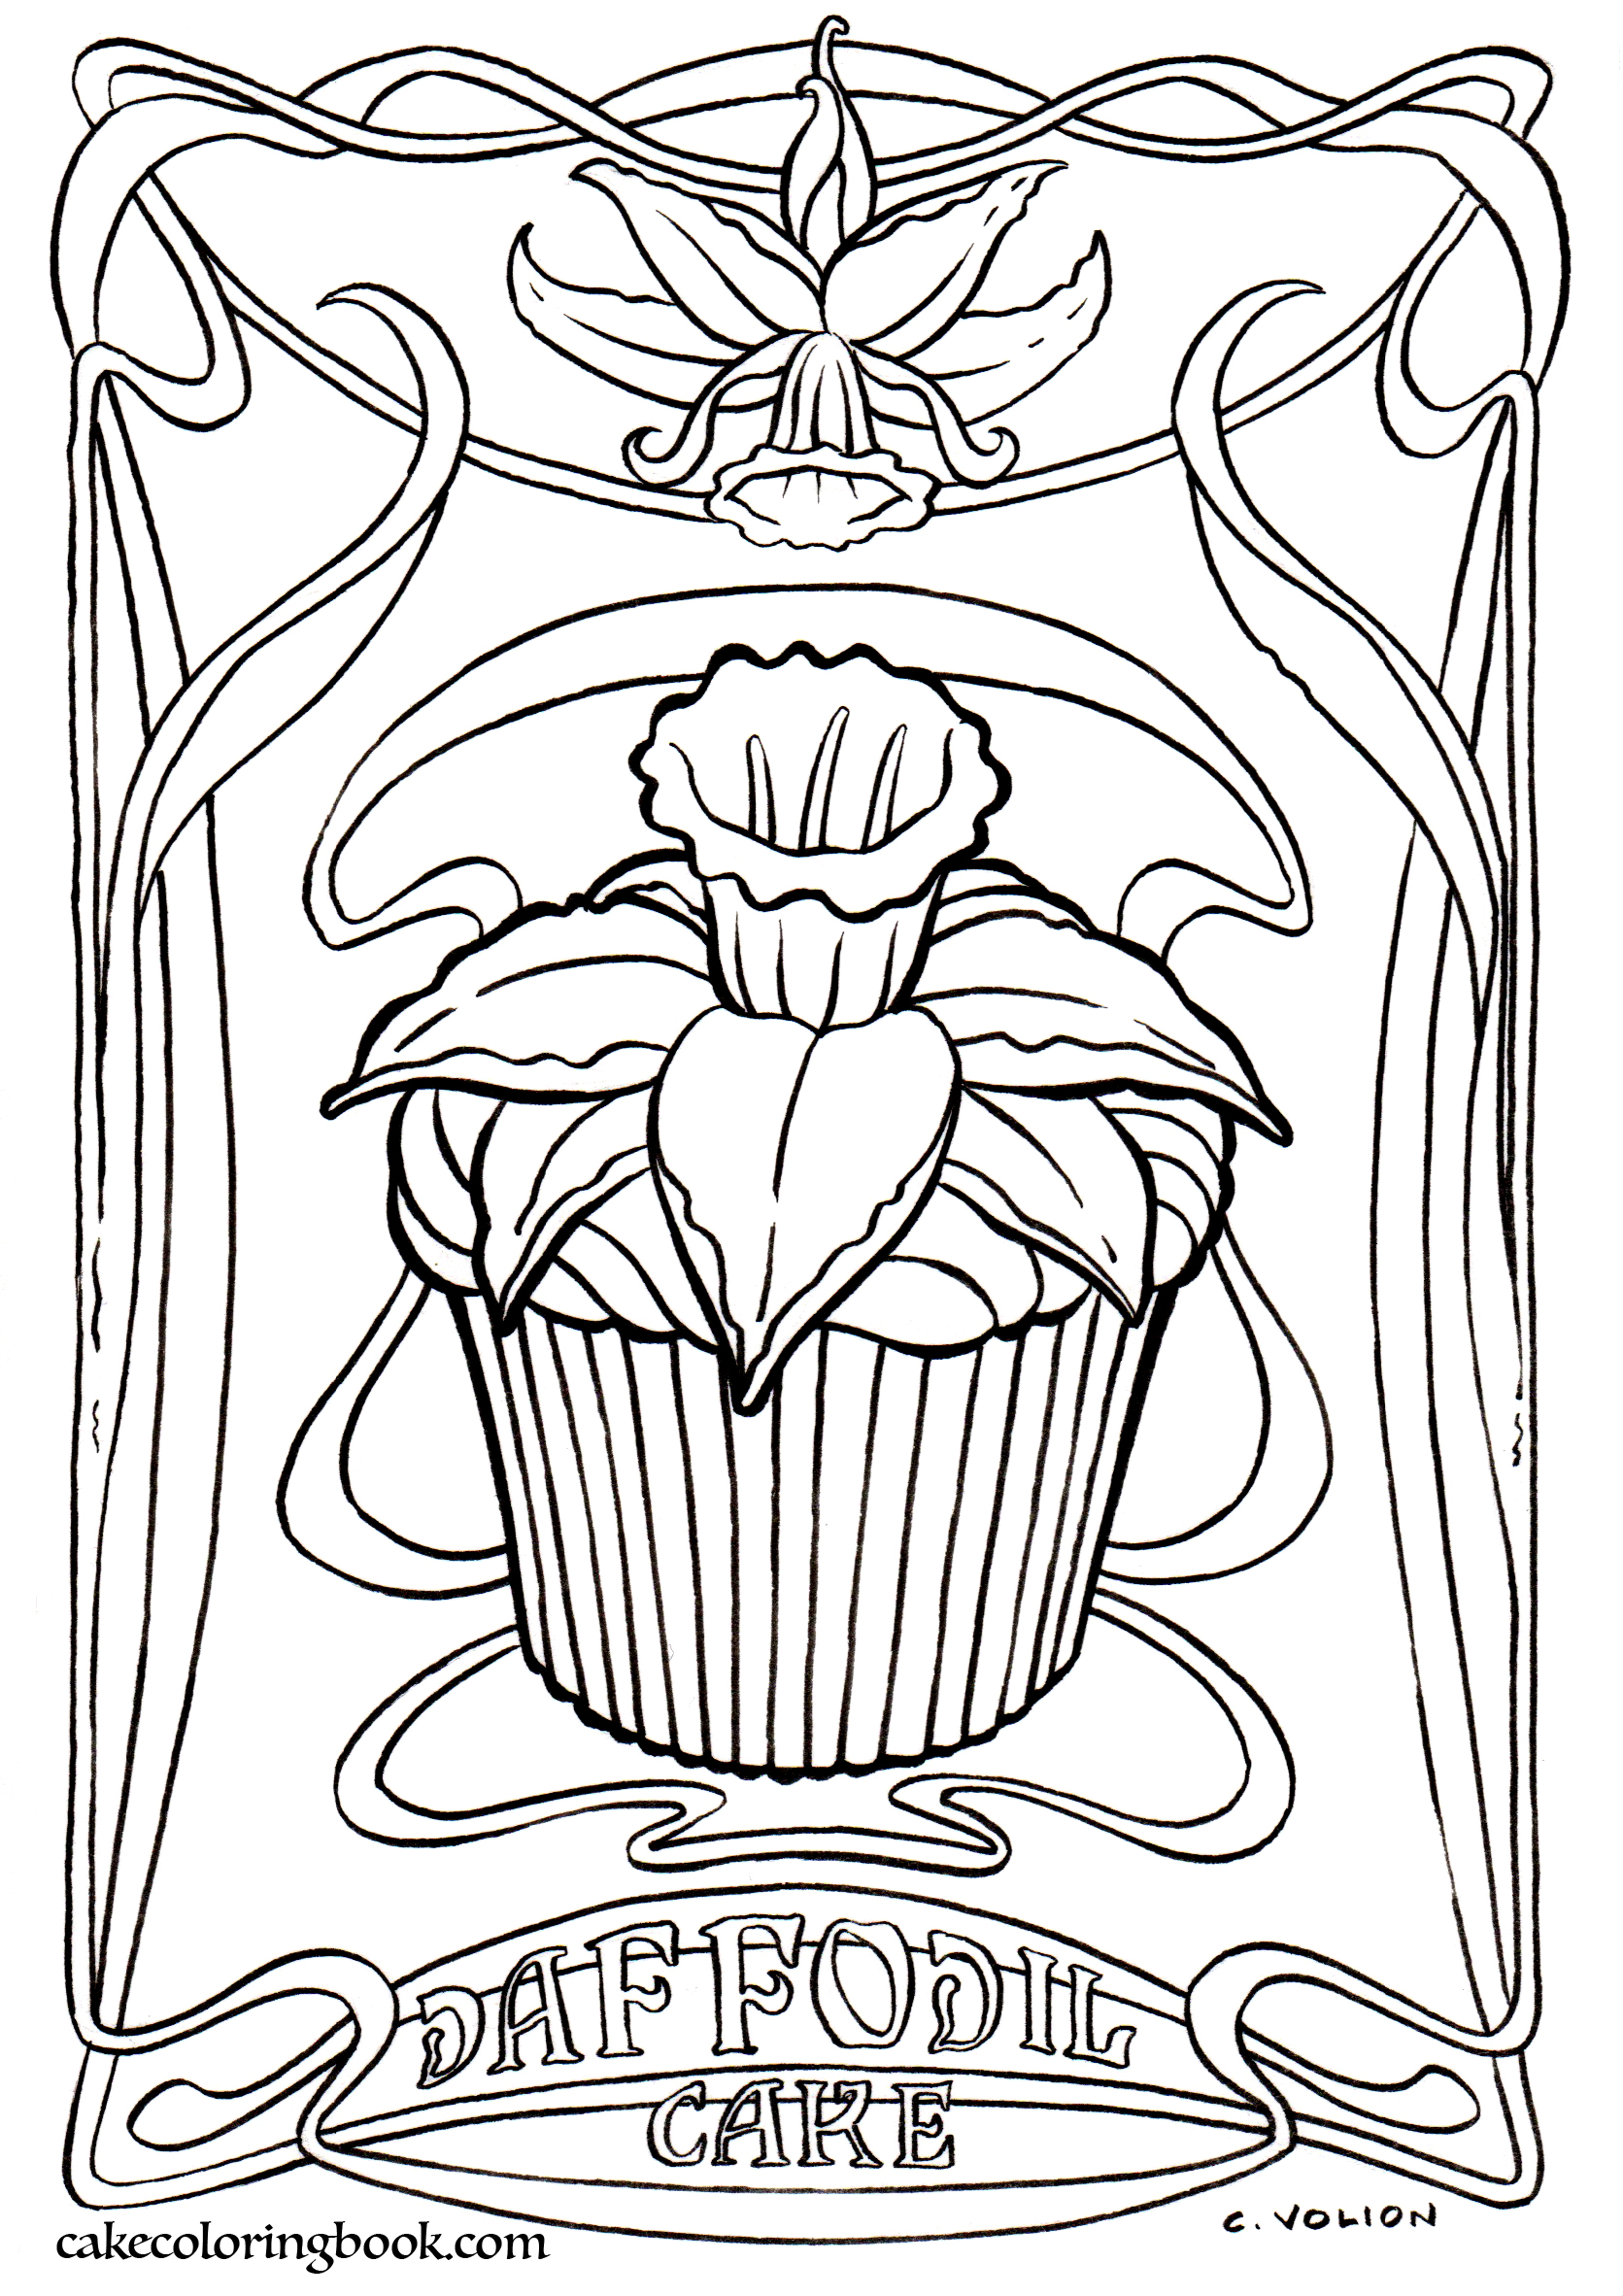 1671x2364 Coloring Book Fantasy Cake Color And Bake Cookbook